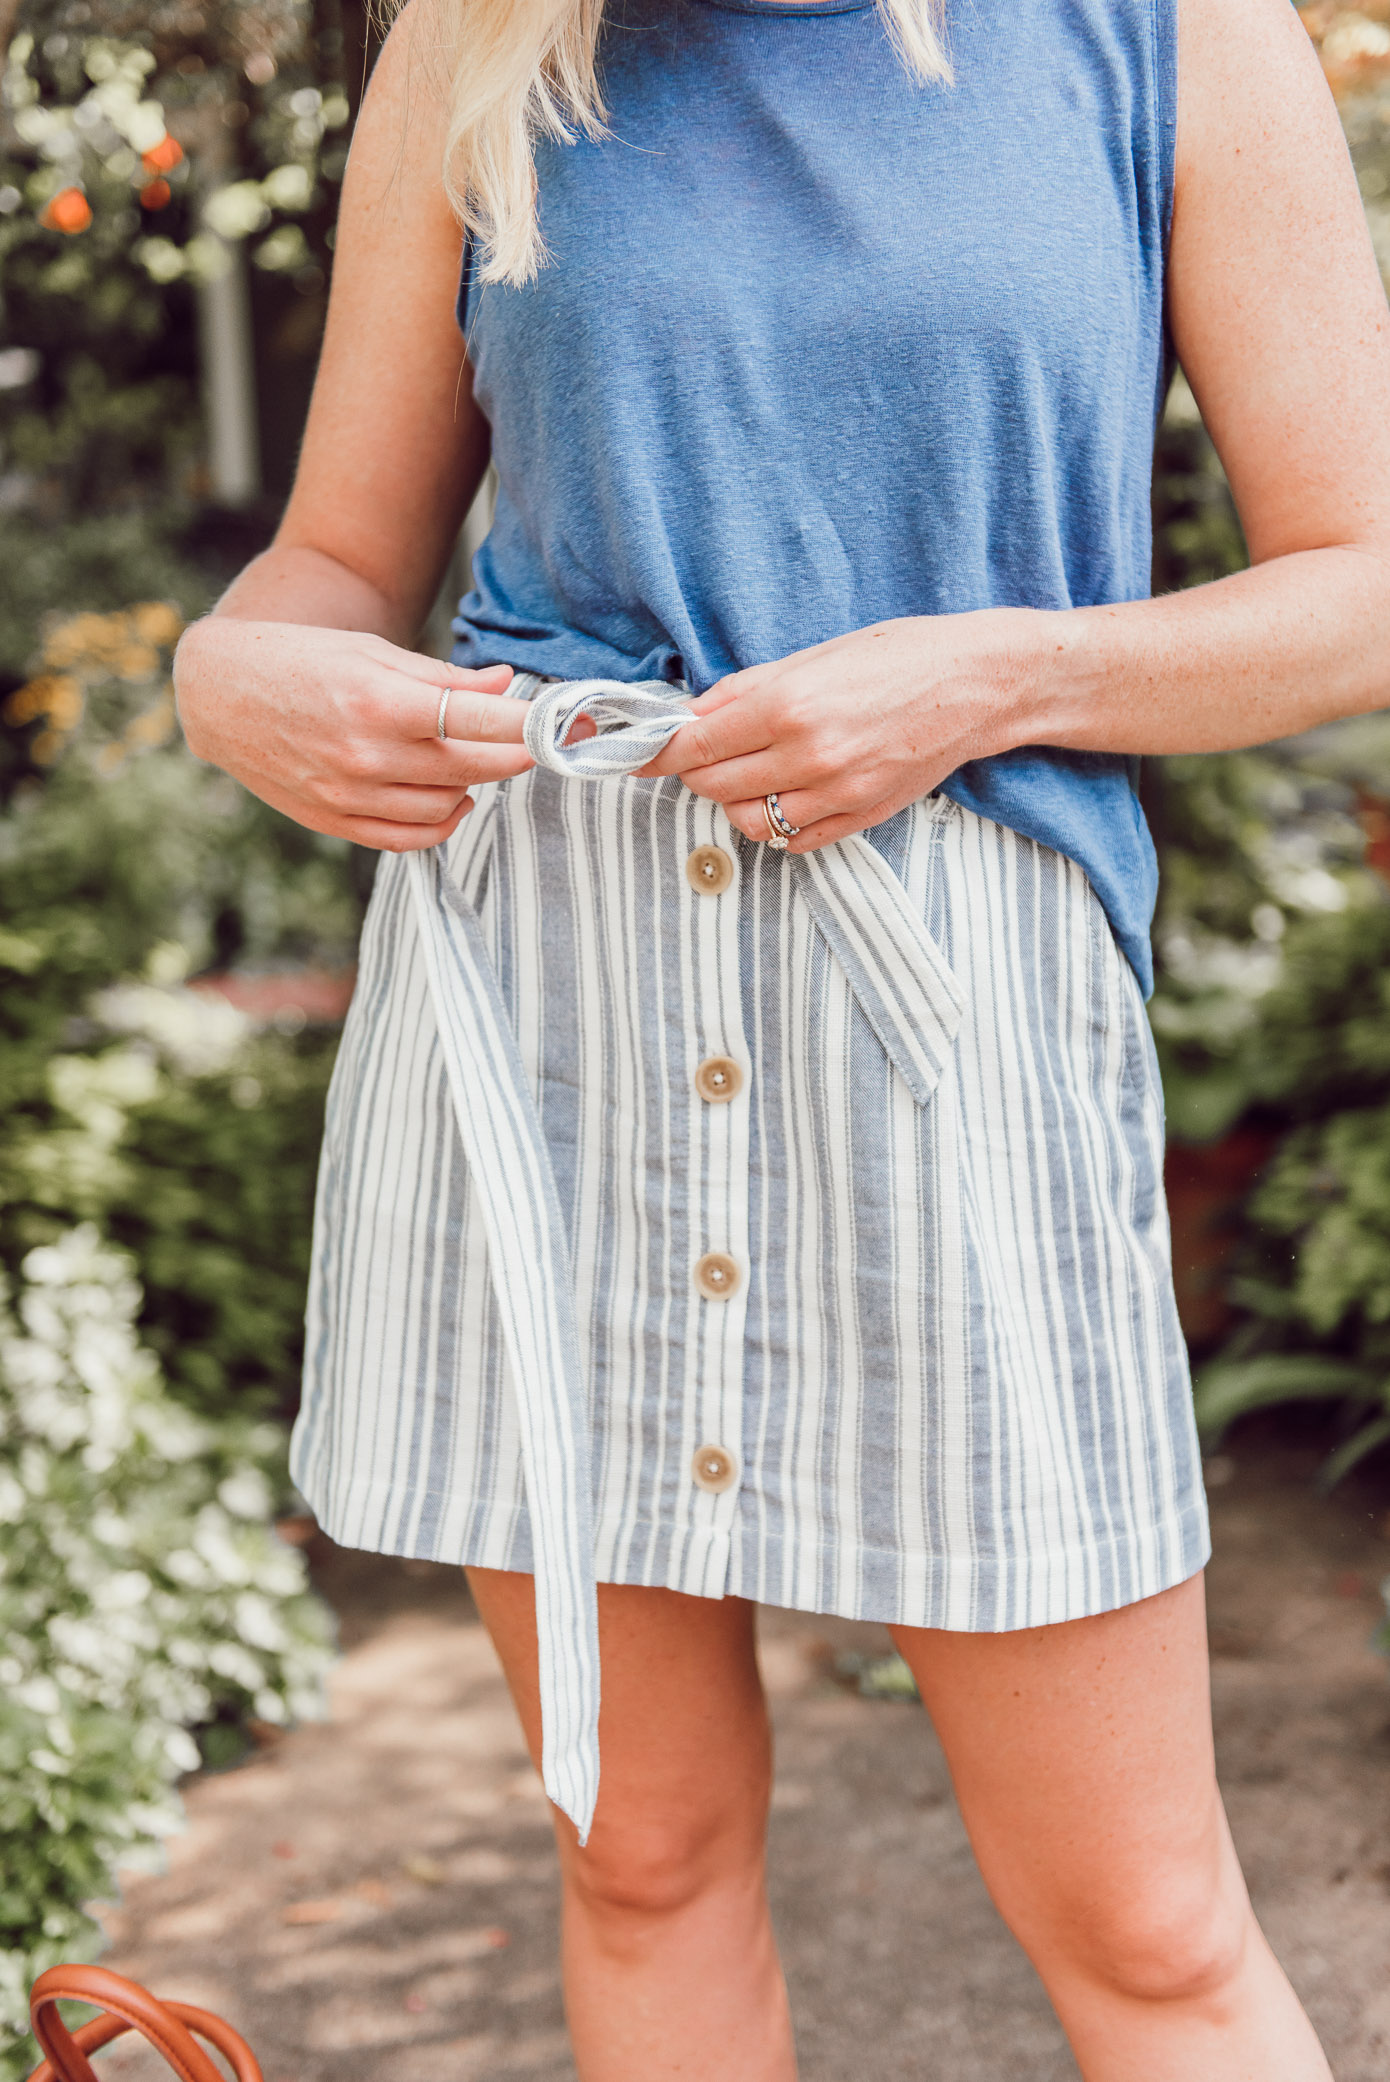 The perfect striped linen mini skirt for summer | ft. Everlane, Sanctuary, Soludos, & more | Louella Reese